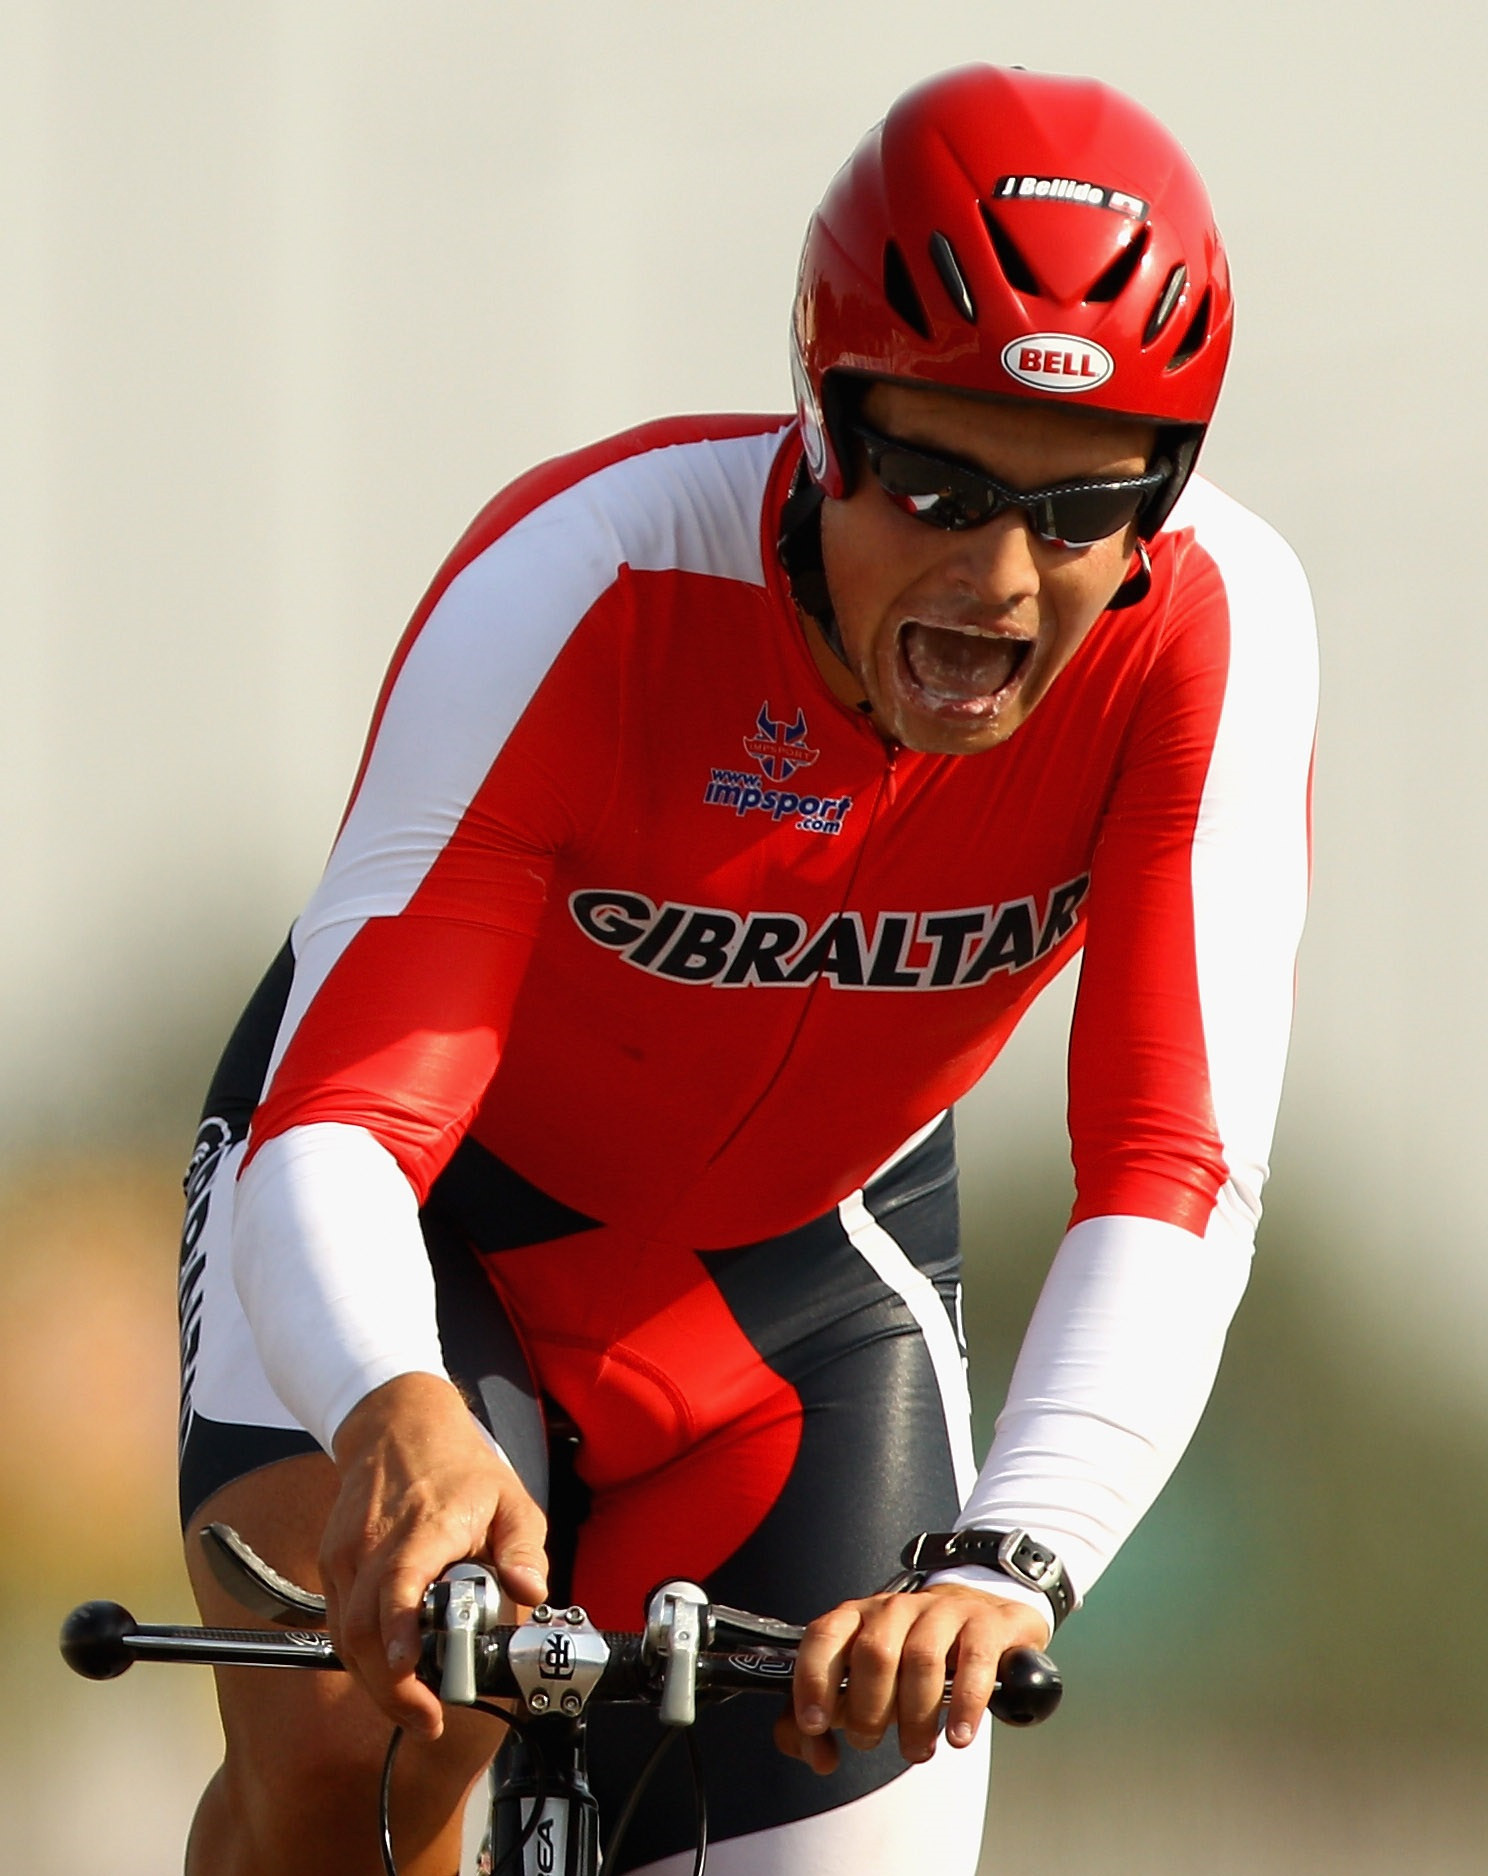 Cyclist Julian Bellido is among the athletes that will compete for Gibraltar at Gold Coast 2018 ©Getty Images